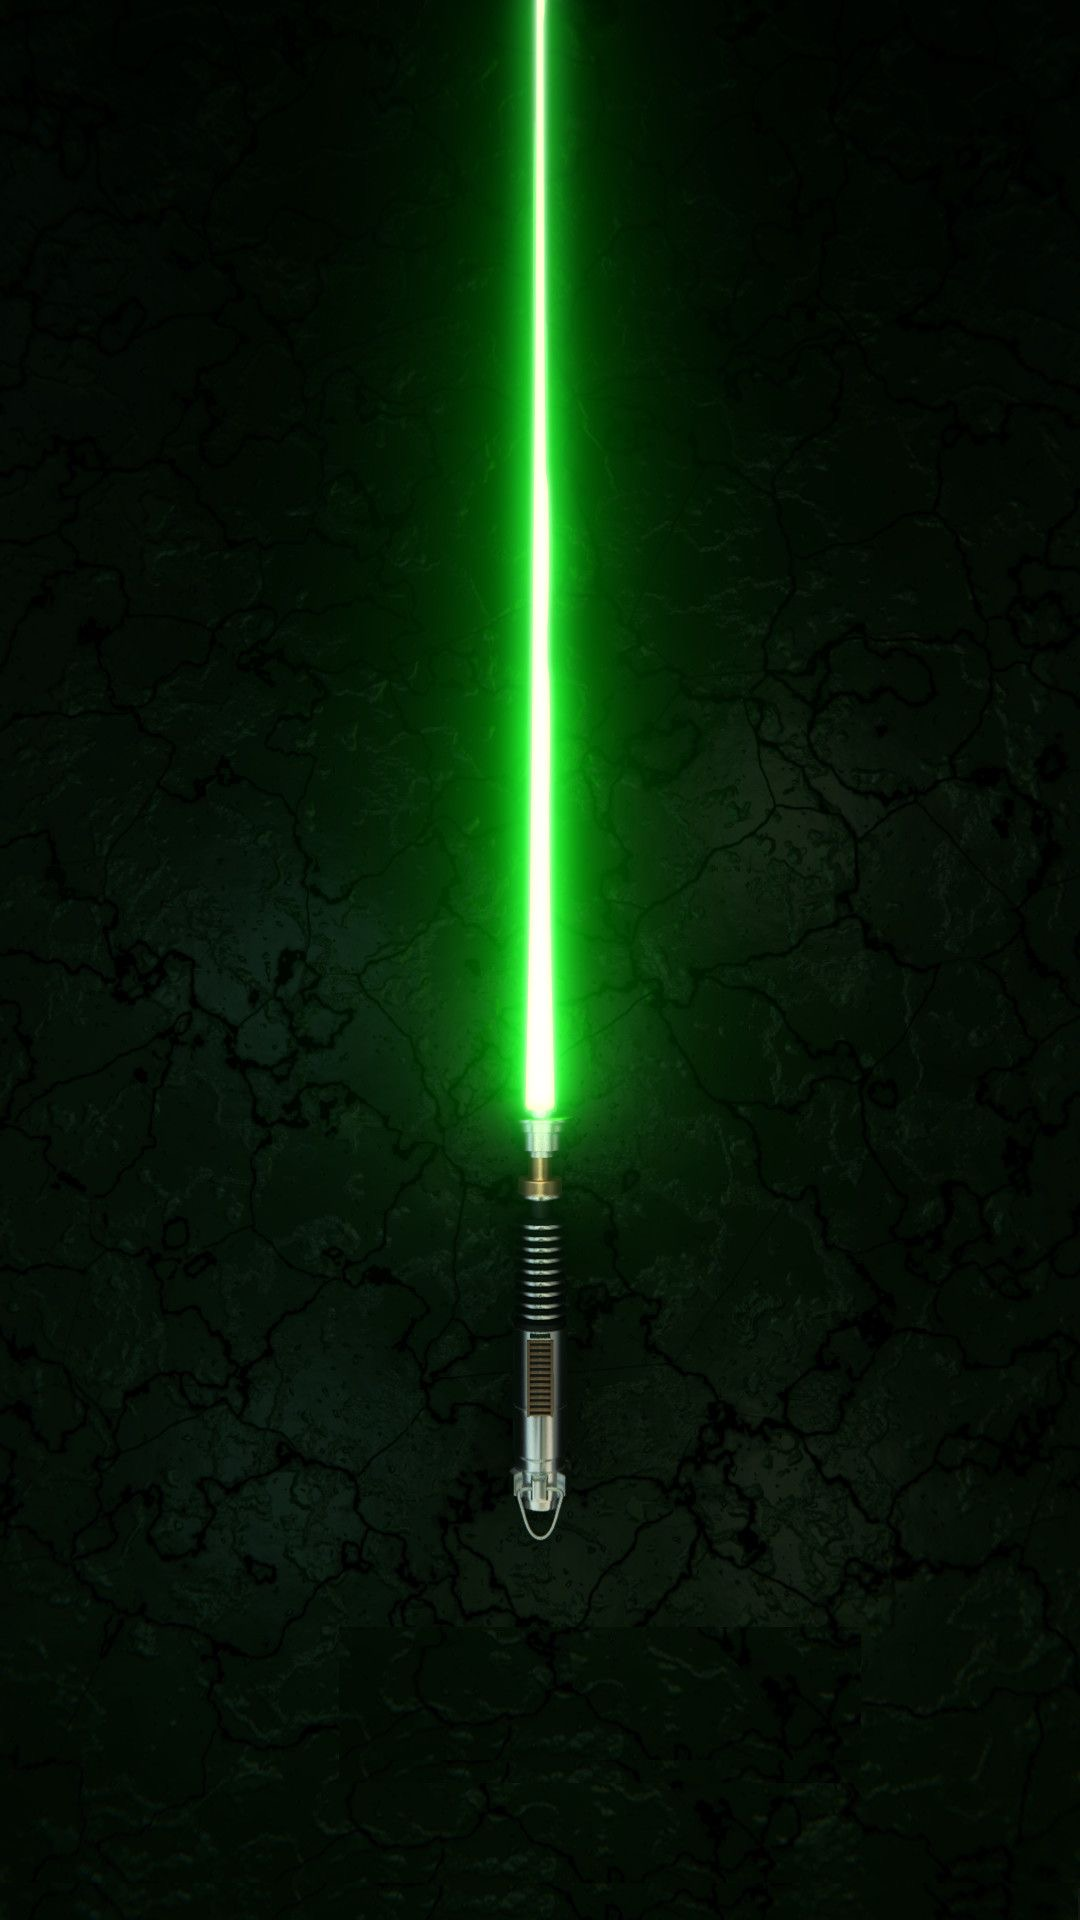 Star Wars Wallpapers iPhone Android Smartphone 6